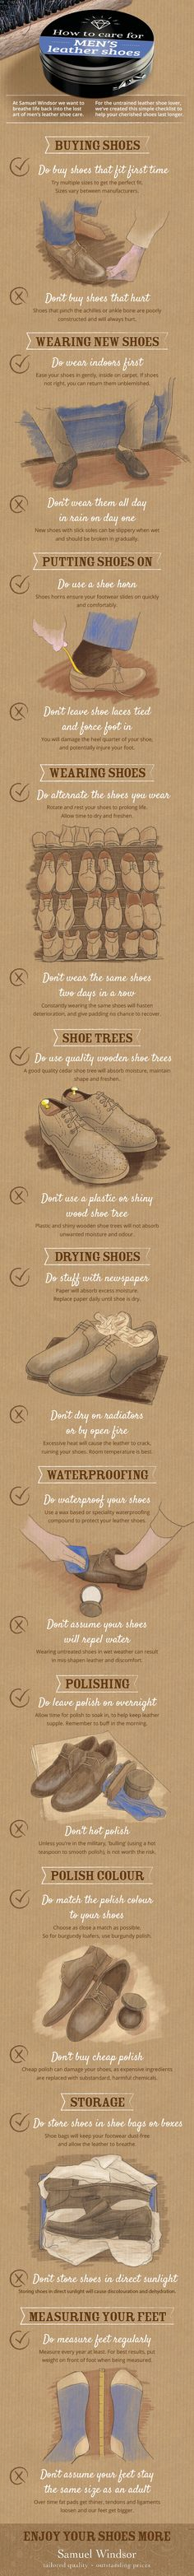 """Taking good care of your leather shoes will help them last longer, look great and keep your feet happy. Adhere to the dos and don'ts in this leather shoe care guide, and we promise you will enjoy your shoes more."""